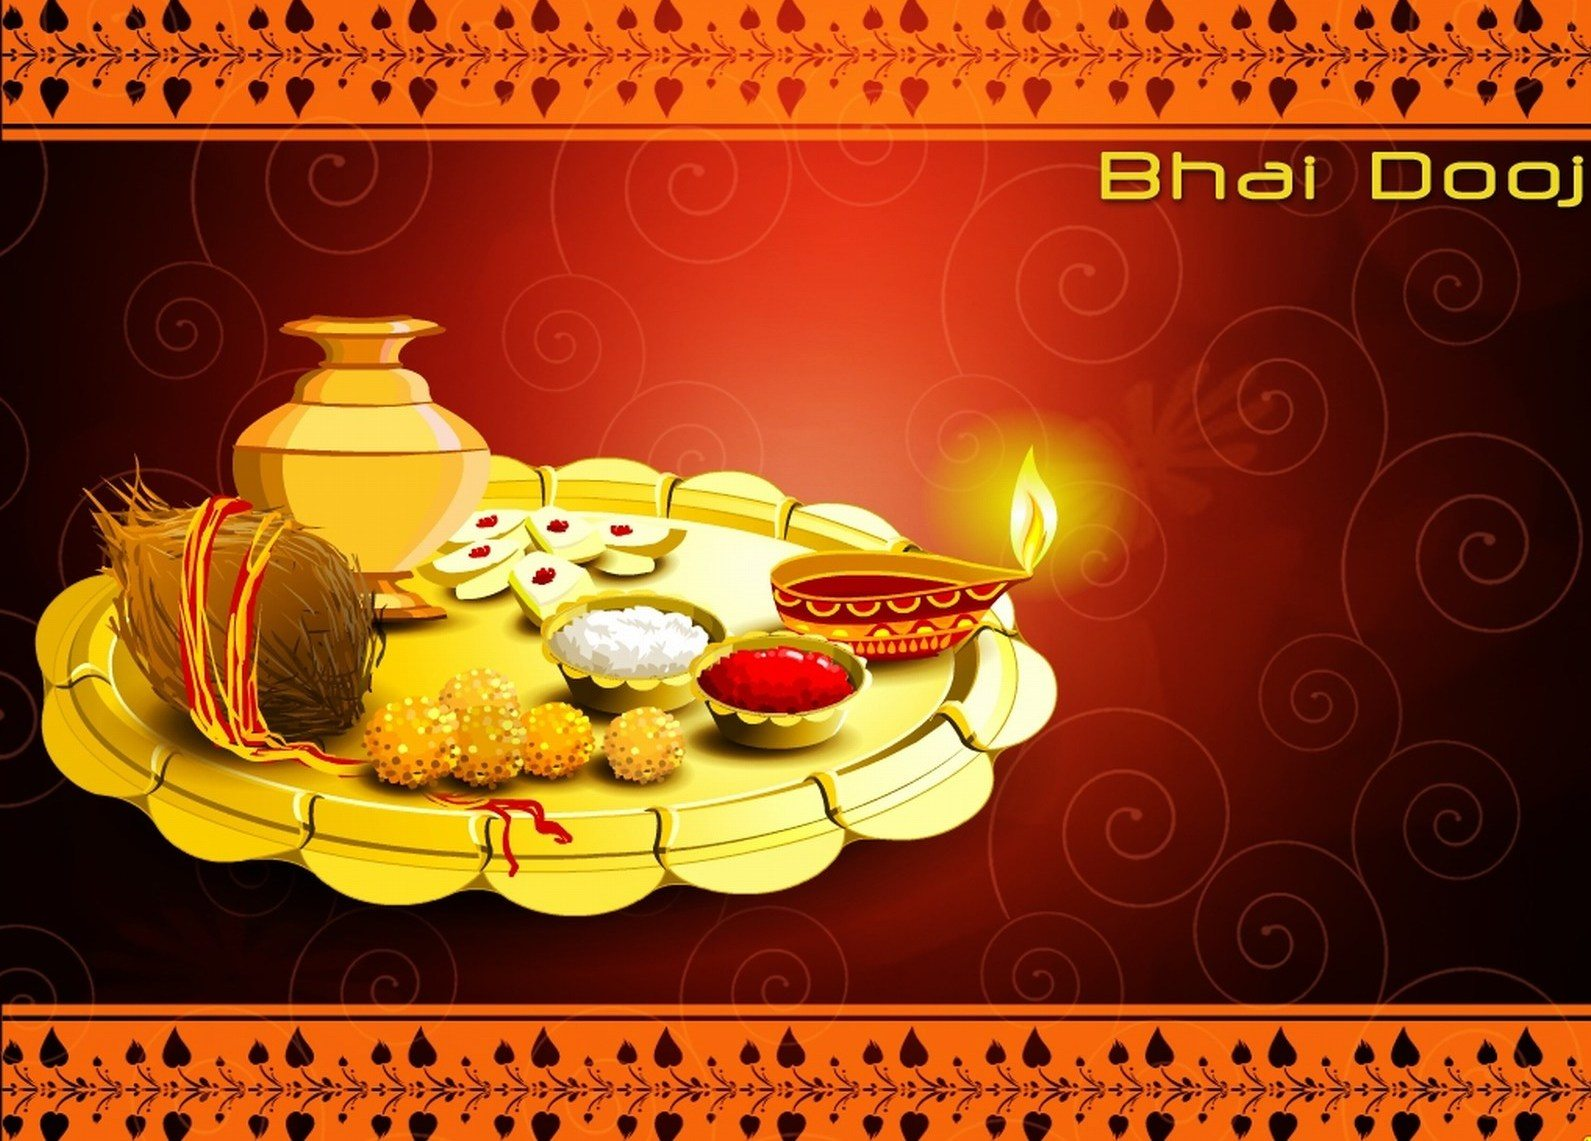 Happy Bhai Dooj 2015